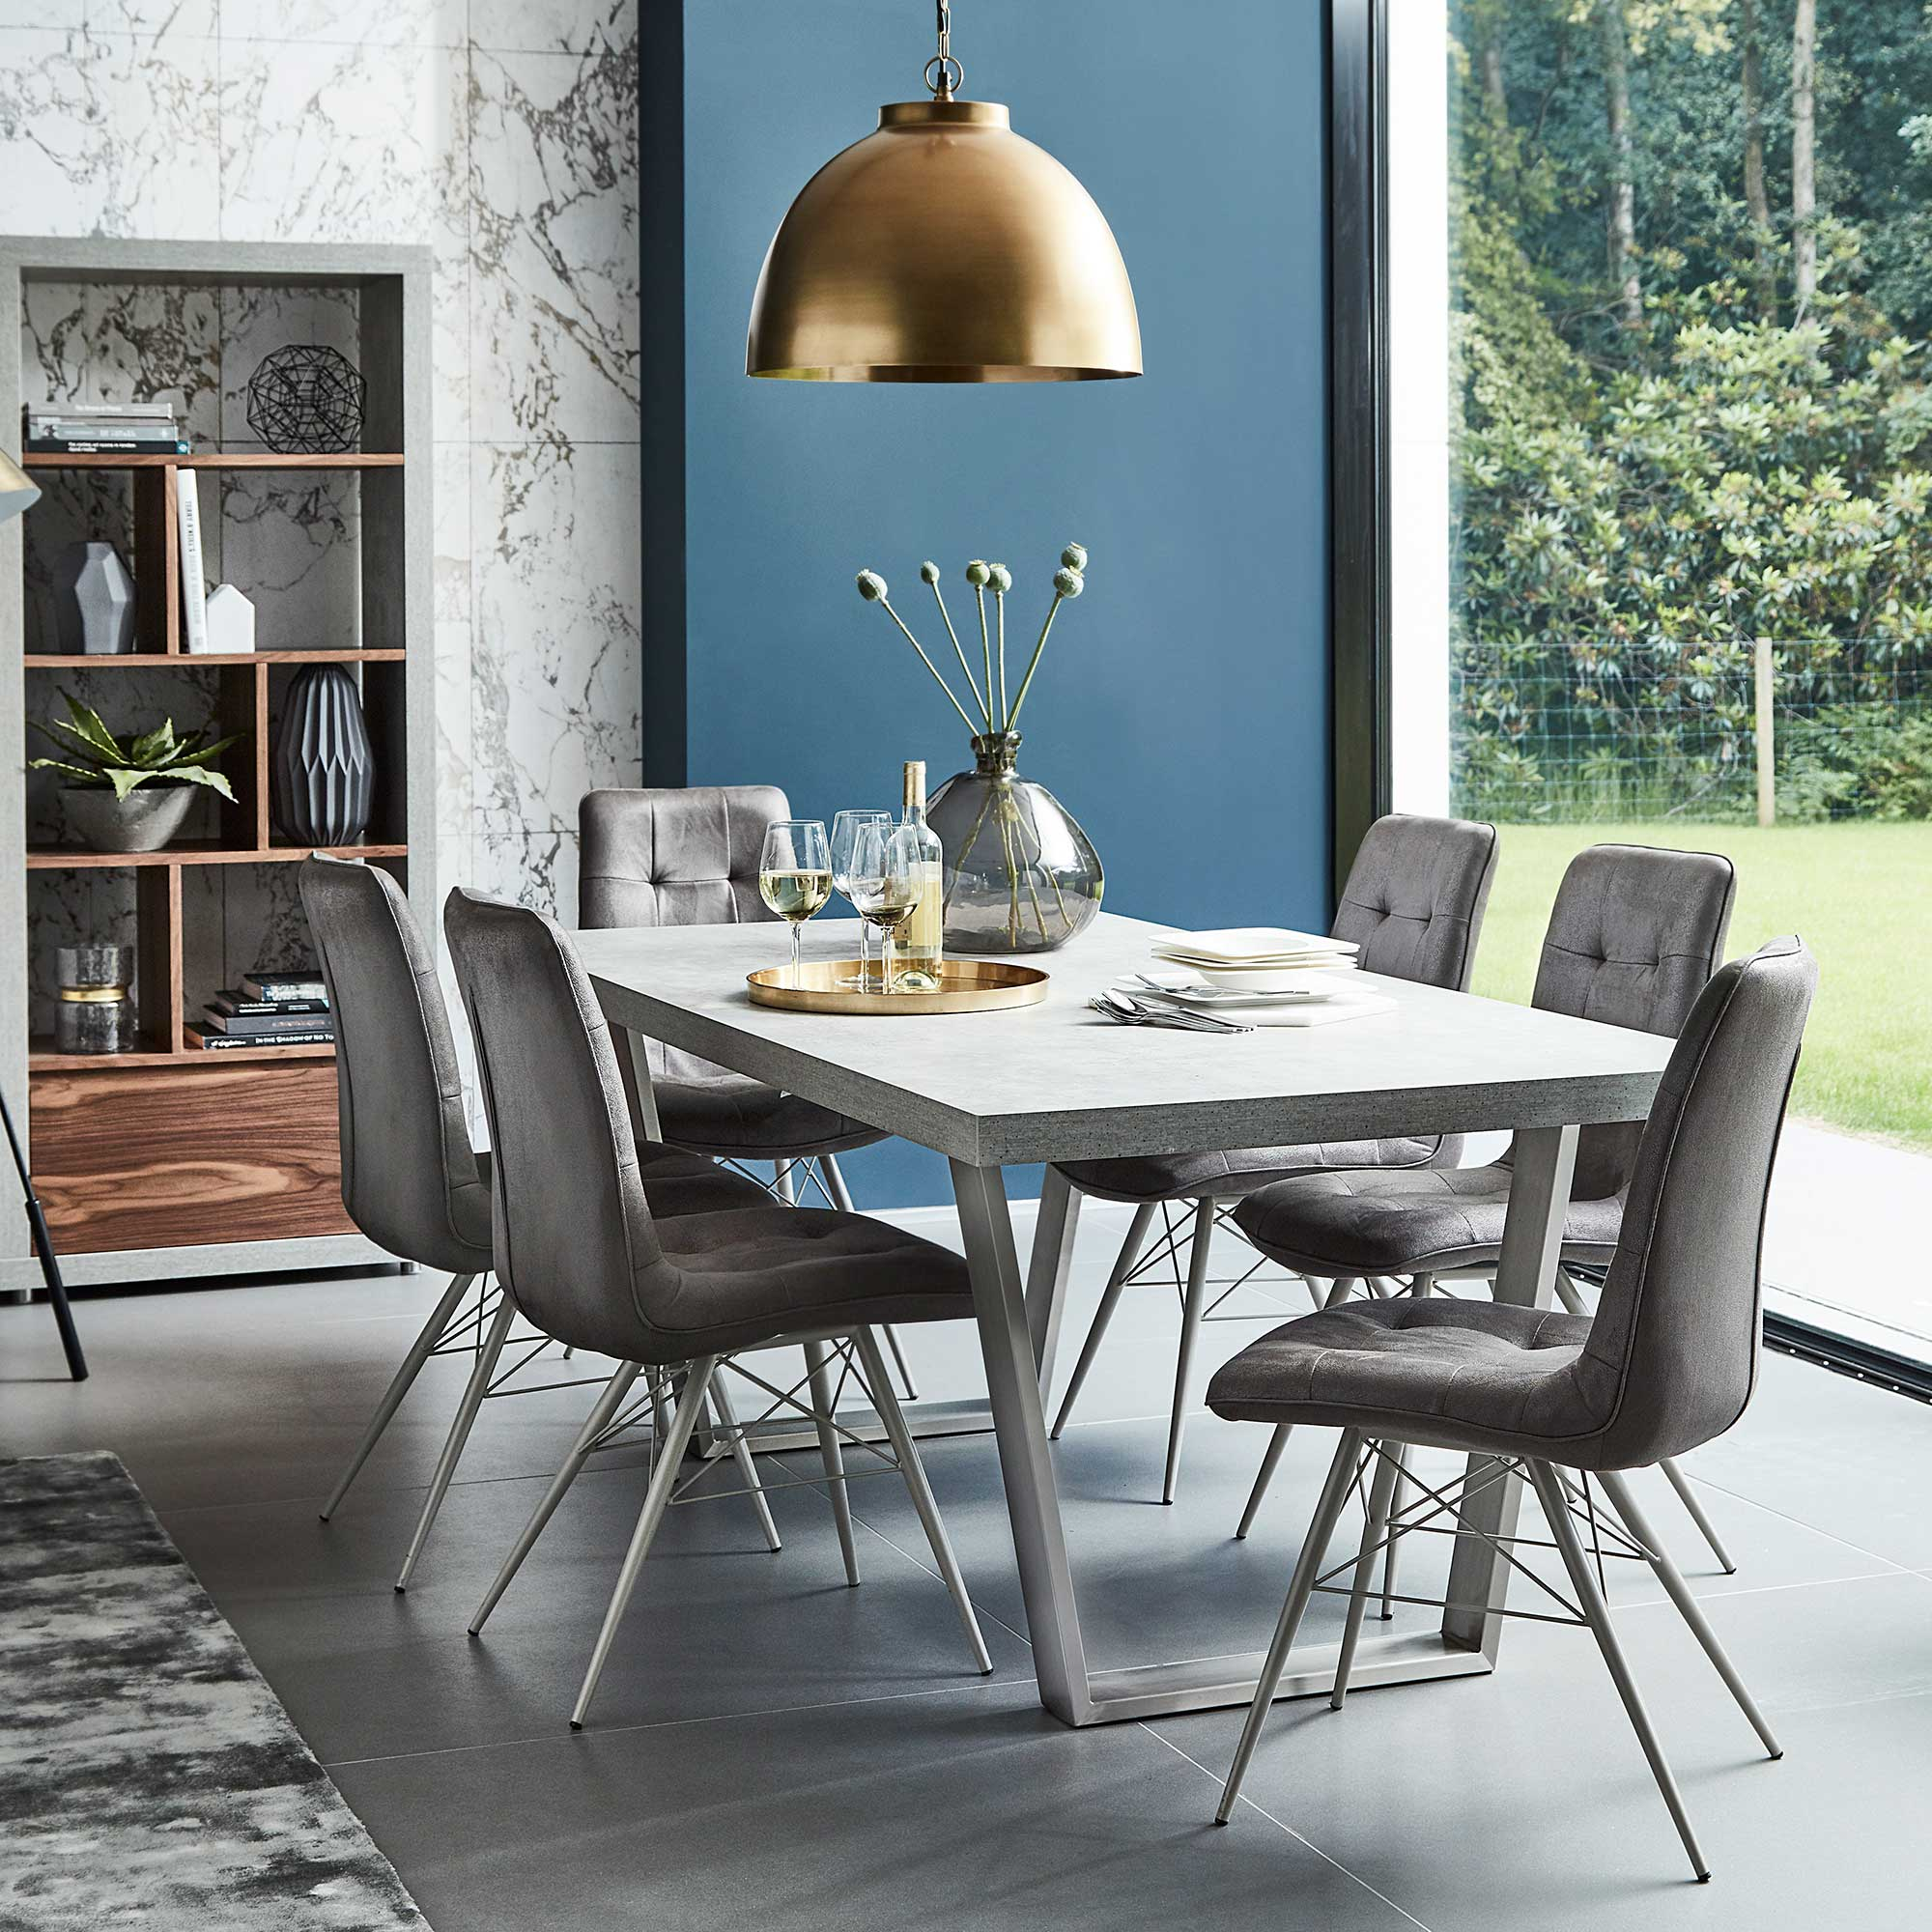 CONCRETE LOOK DINING TABLE L200cm x D100cm x H75cm